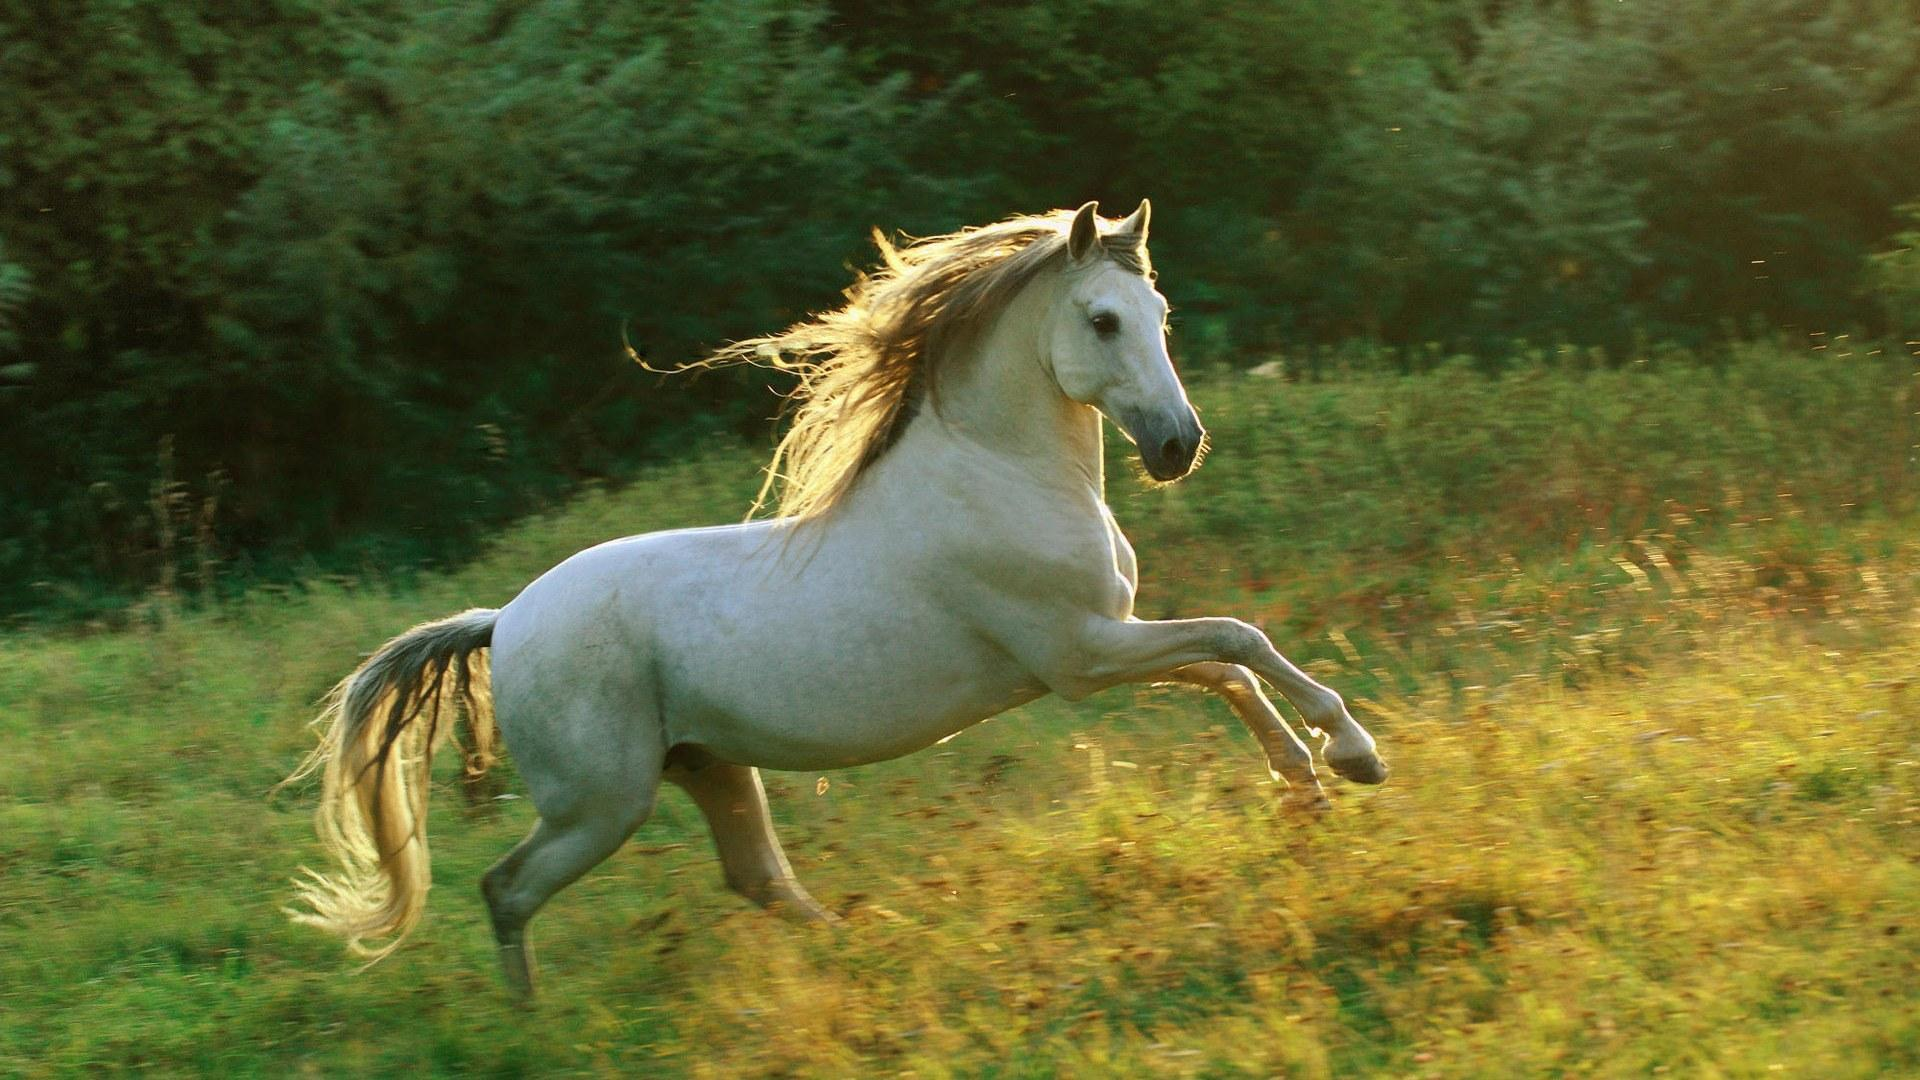 horse wallpapers category of hd wallpapers horse screensavers is 1920x1080